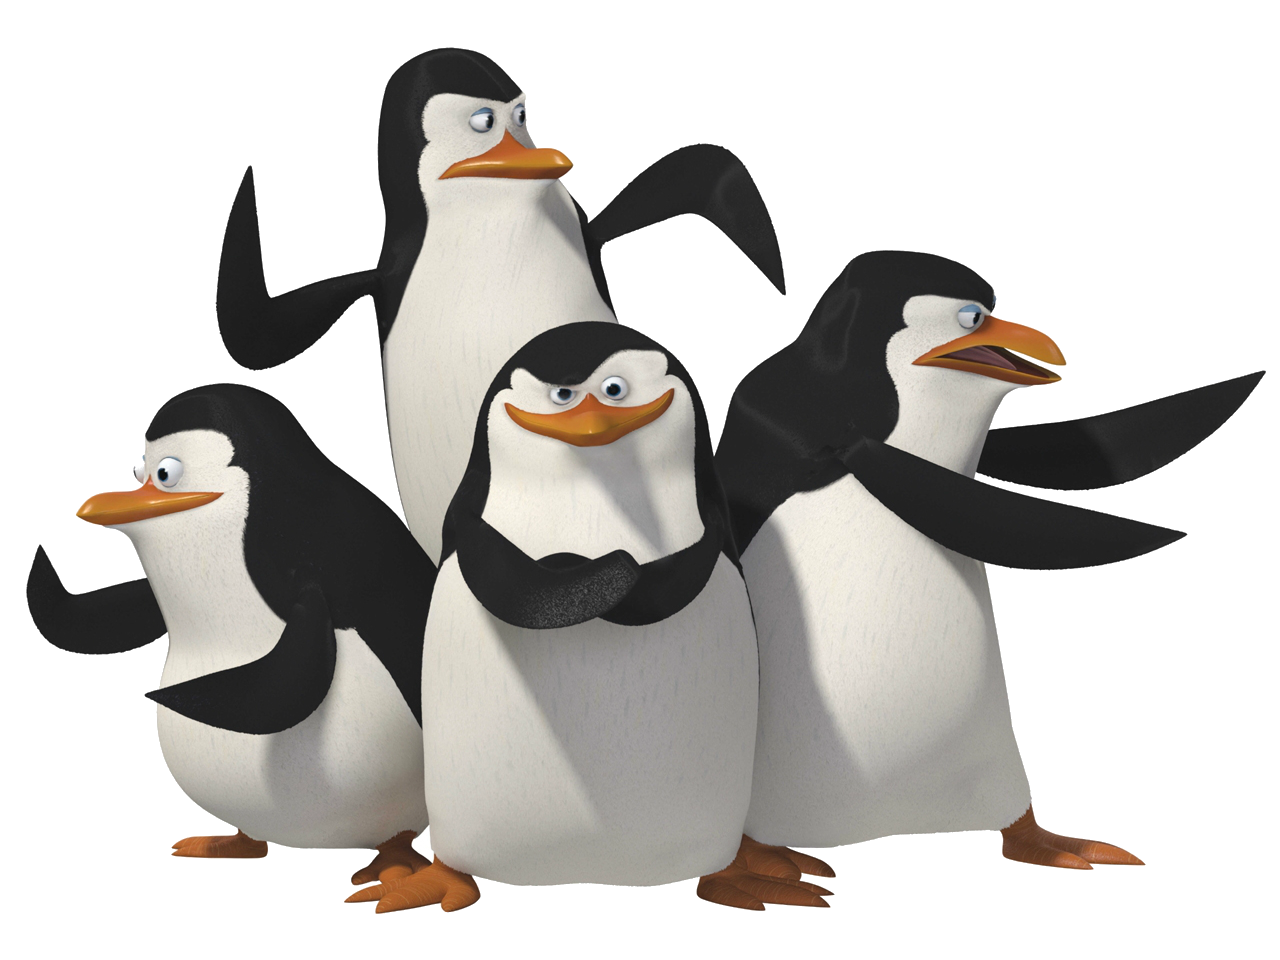 Madagascar 2 Cartoon Characters : Cartoon characters the penguins of madagascar